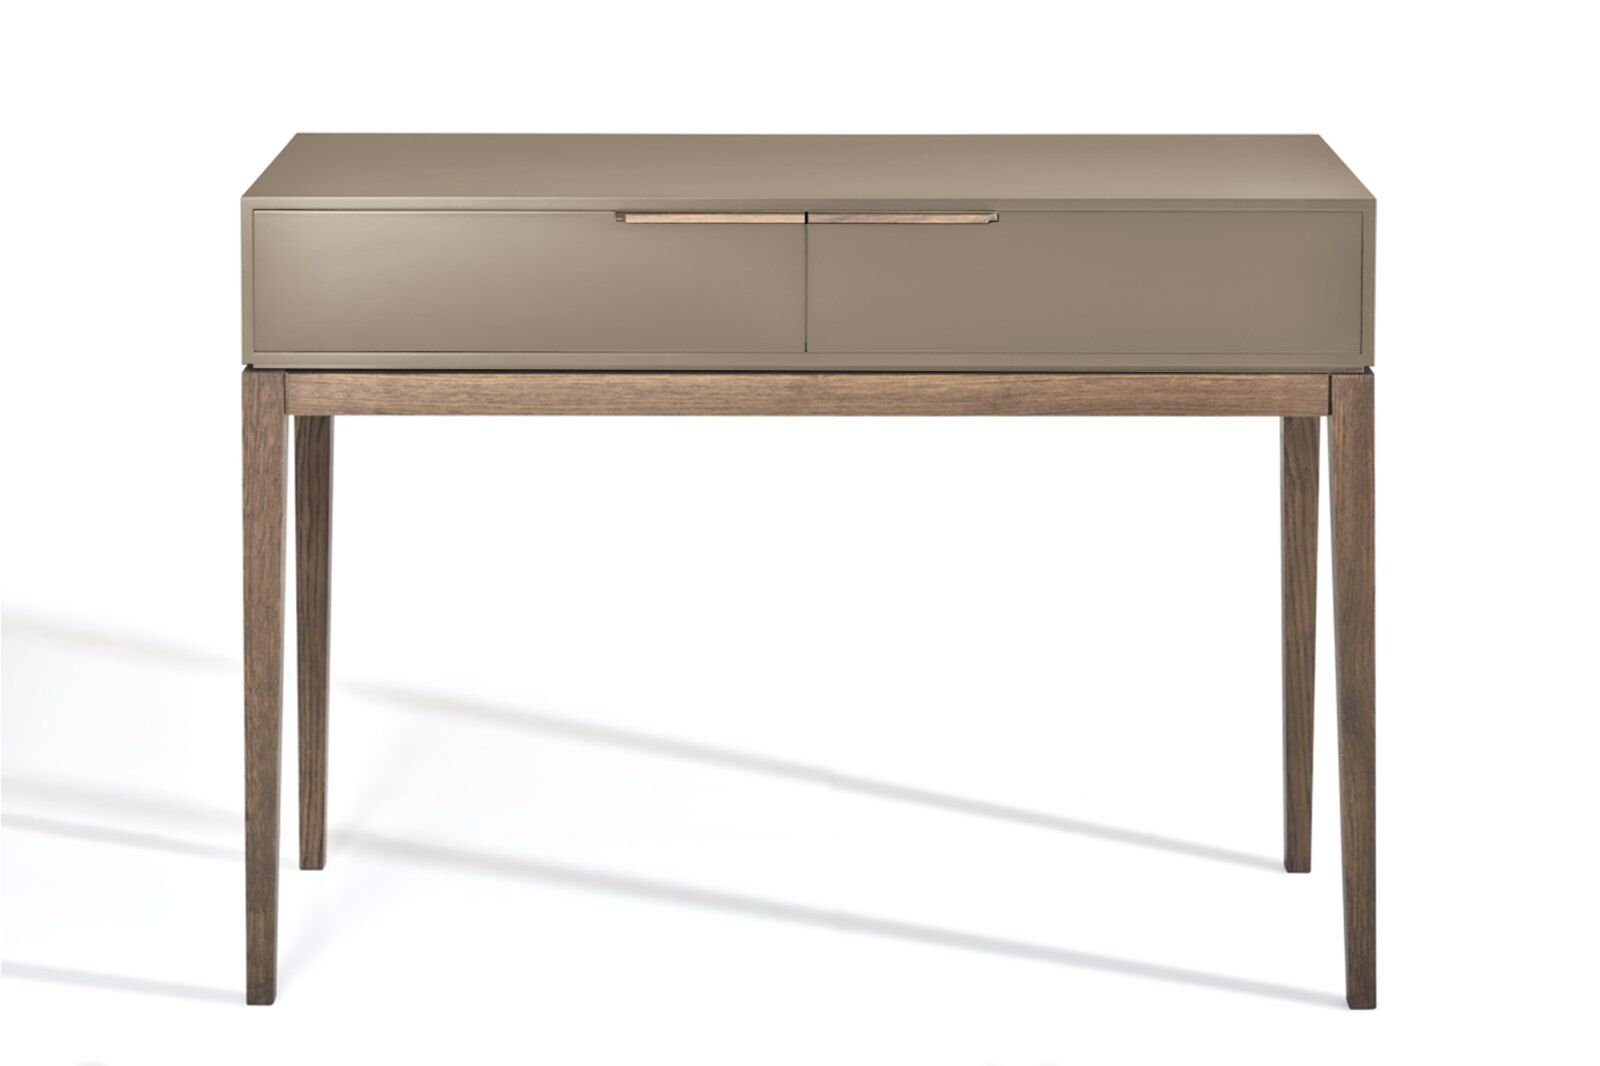 Malibu Console Table 120cm  / 1